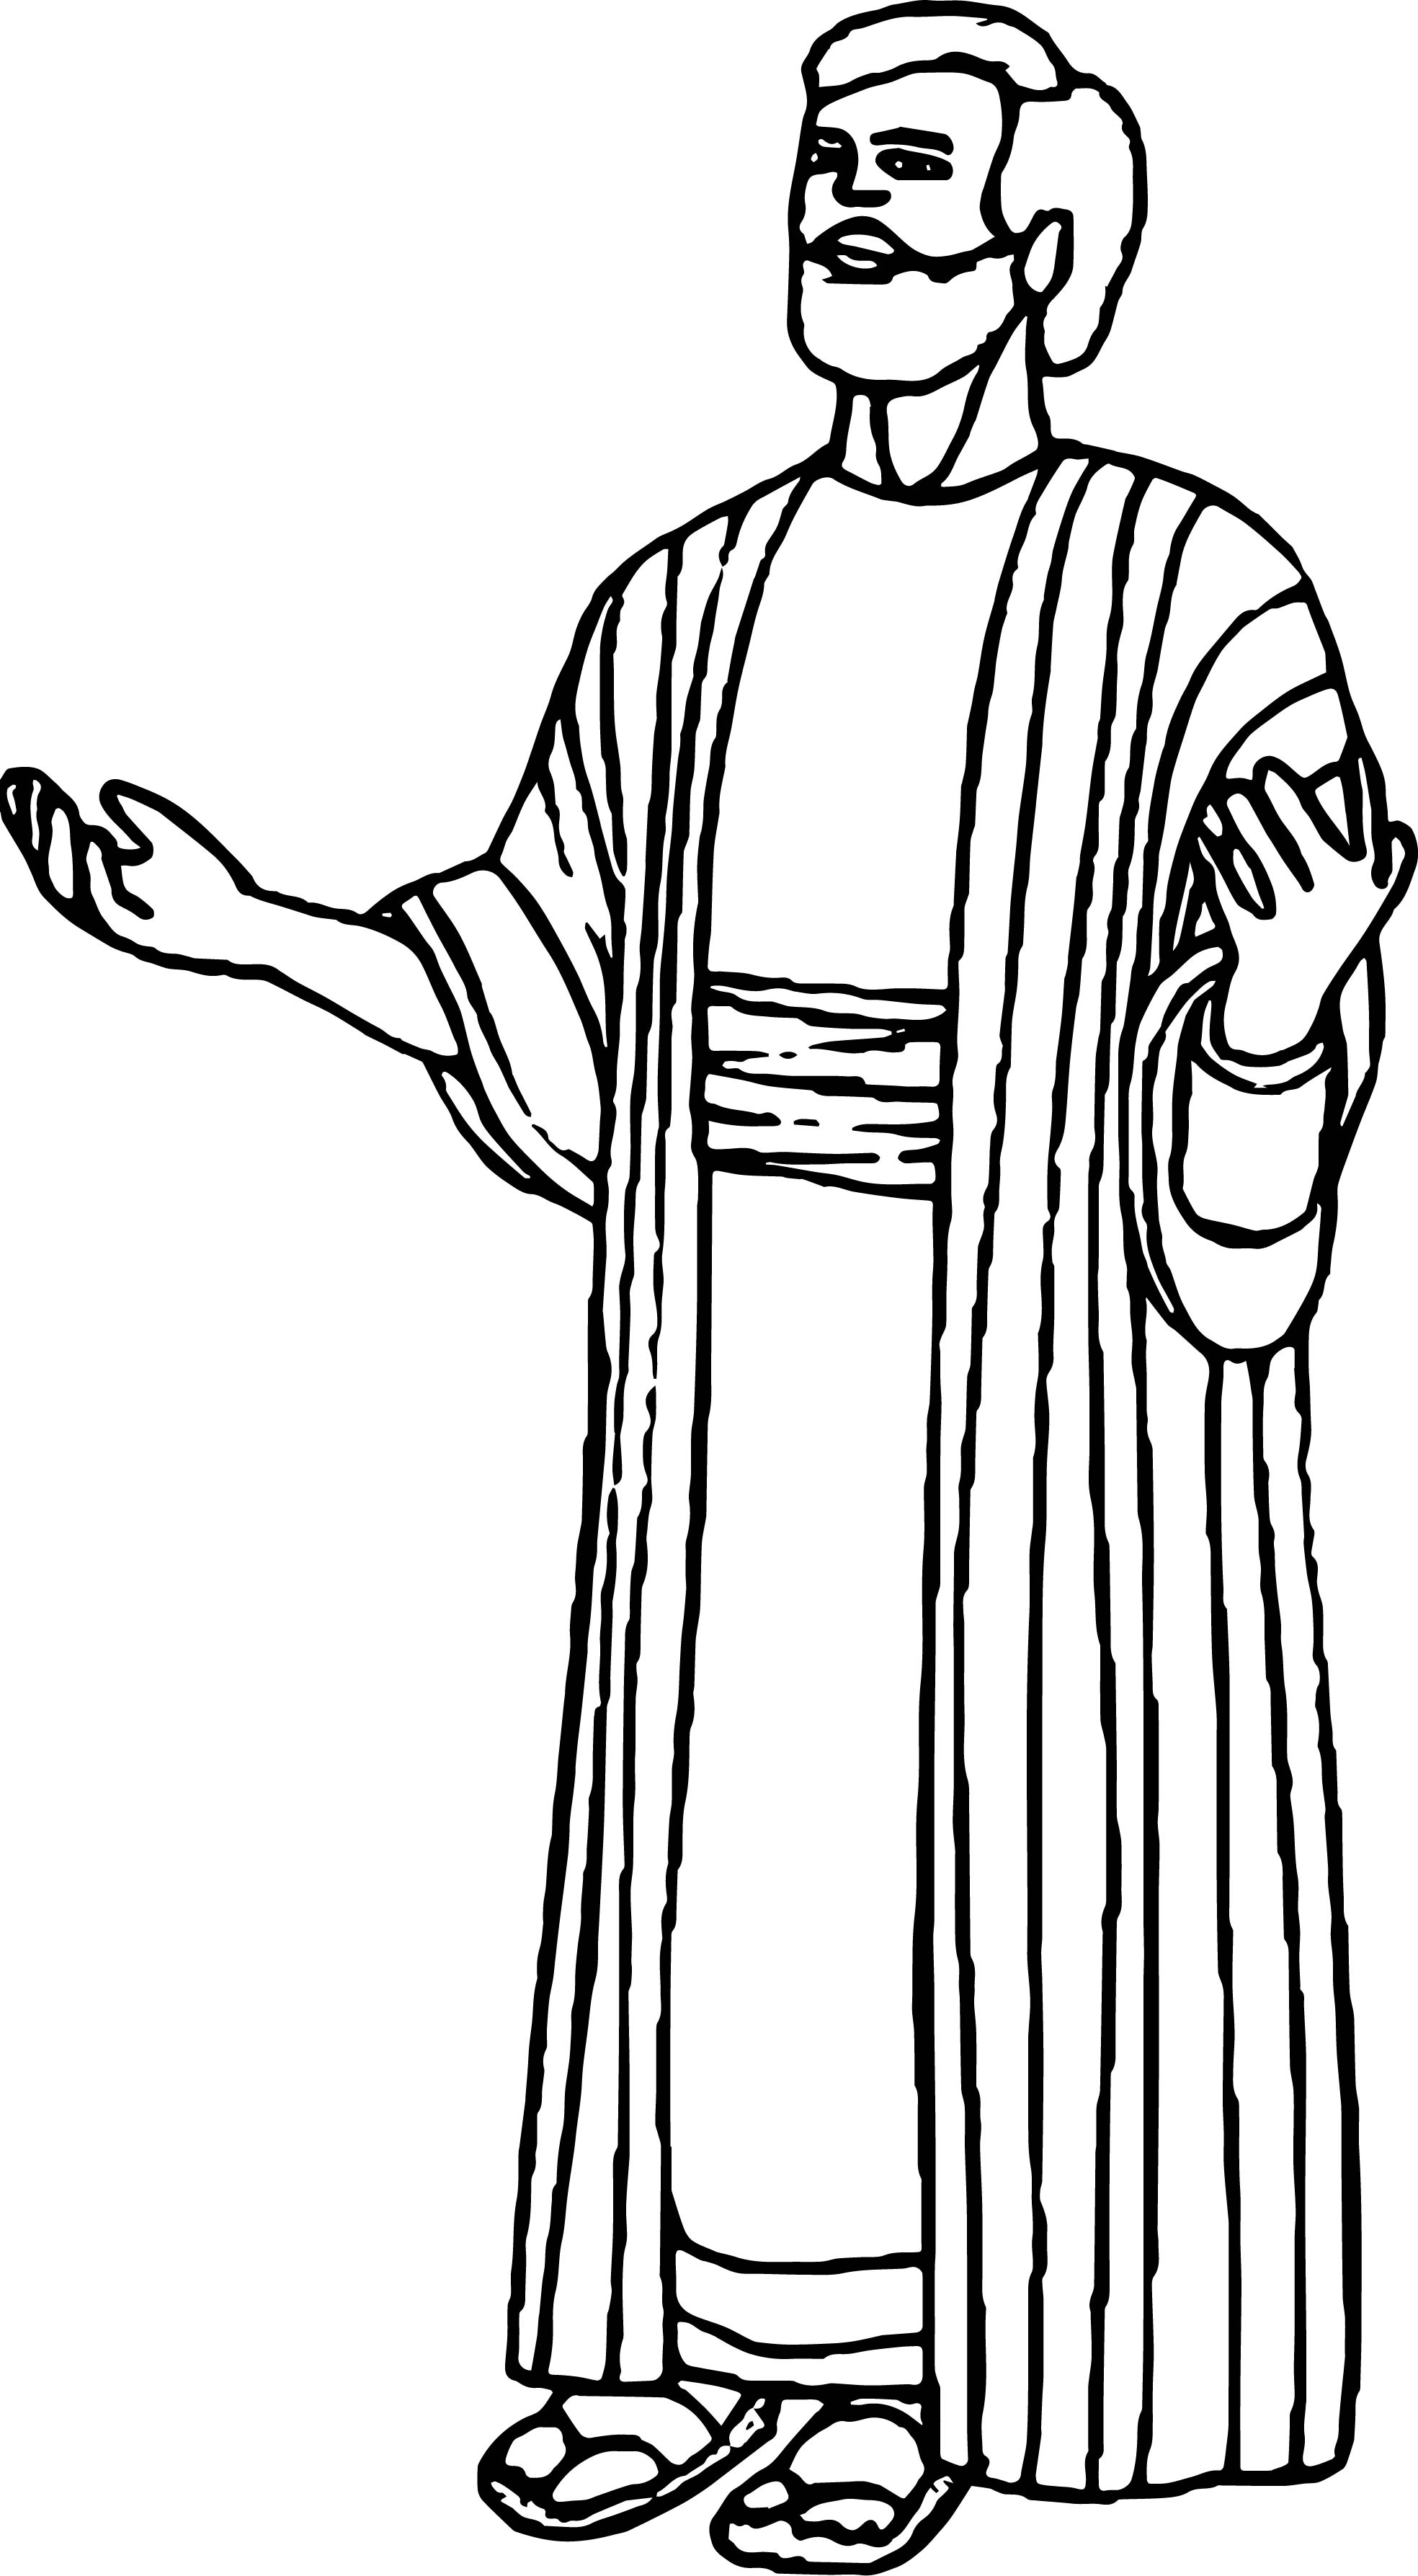 Apostel Paul Coloring Page Coloring Pages